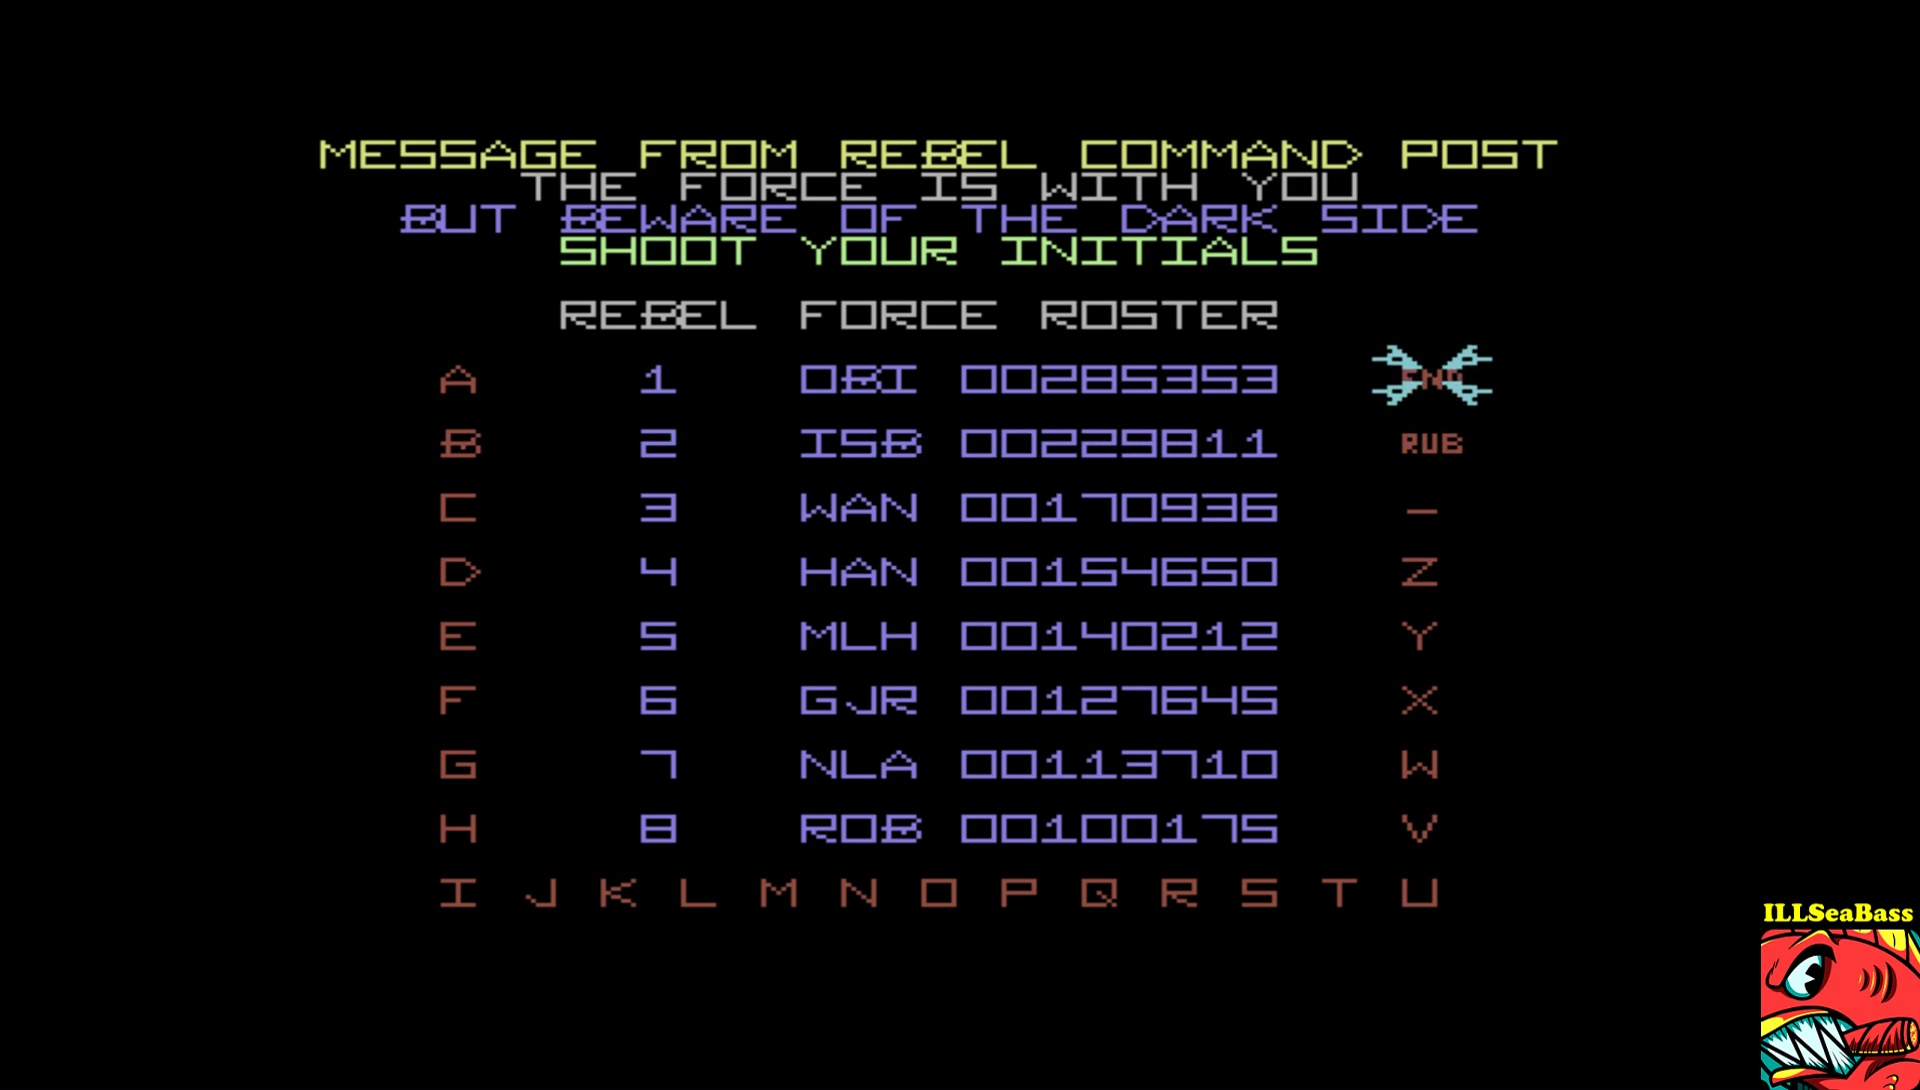 ILLSeaBass: The Empire Strikes Back [Wave 1: Easy] (Commodore 64 Emulated) 229,811 points on 2017-04-25 20:57:55